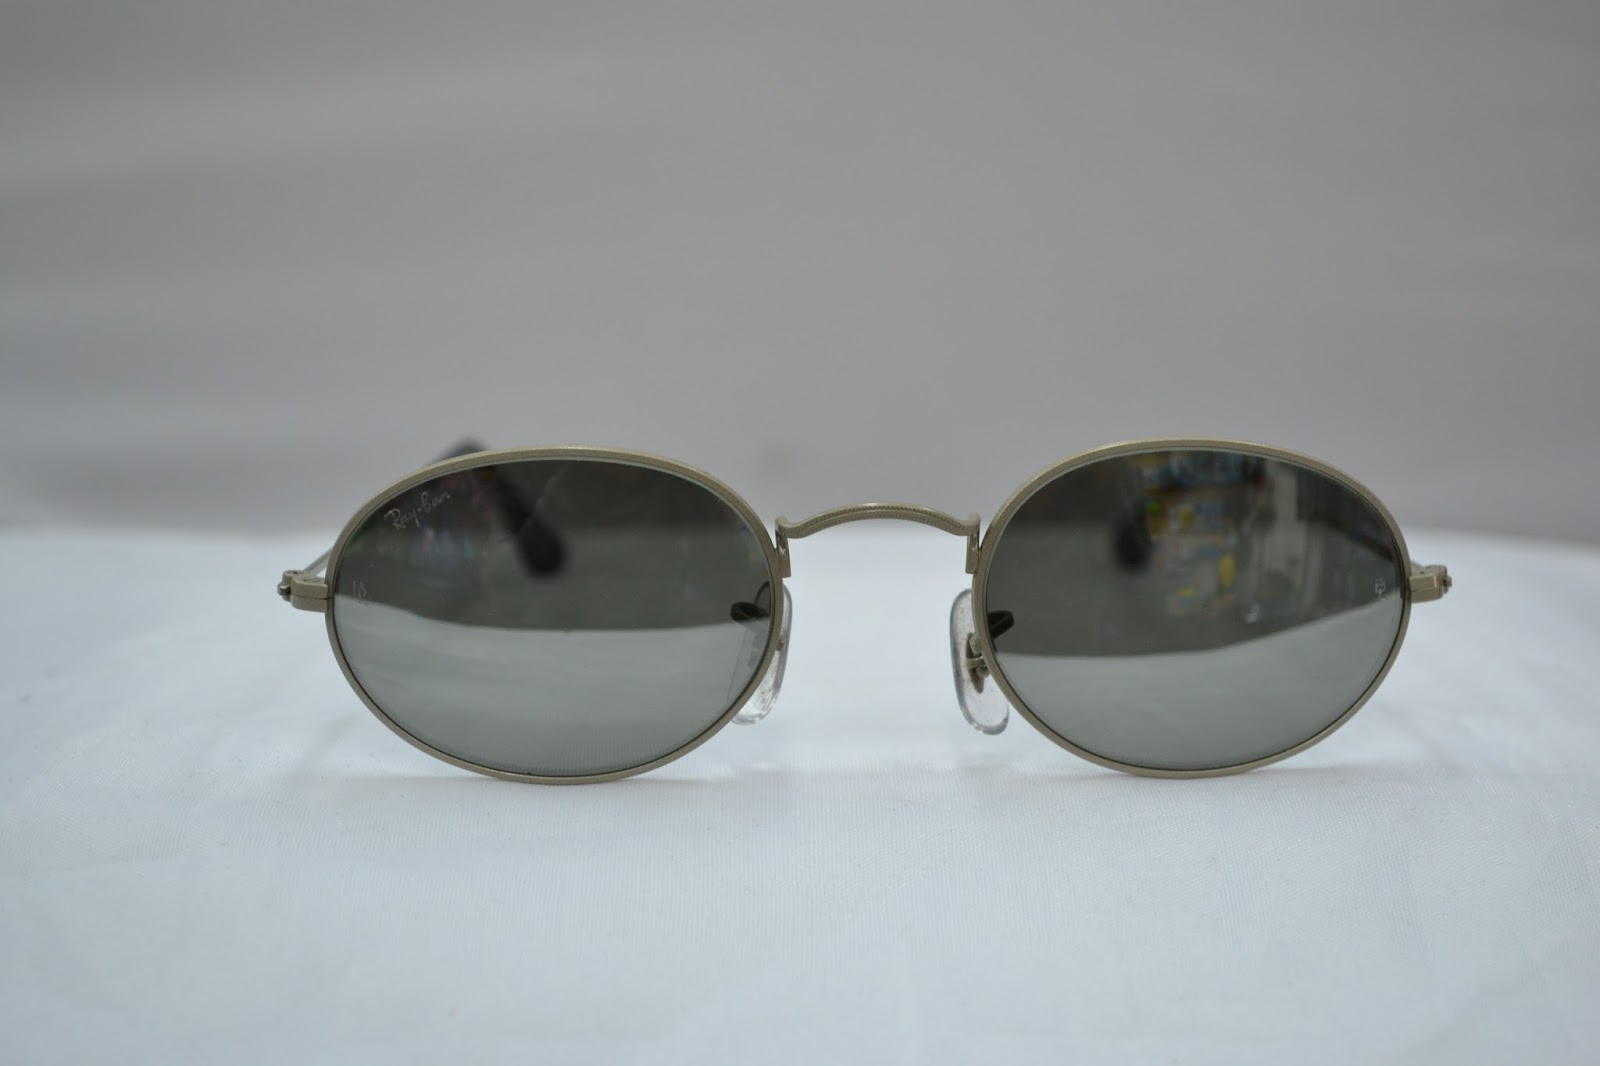 6035226ccb0 Vintage sunglass  Vintage Ray Ban w2457 Oval Matte silver frame G31 ...